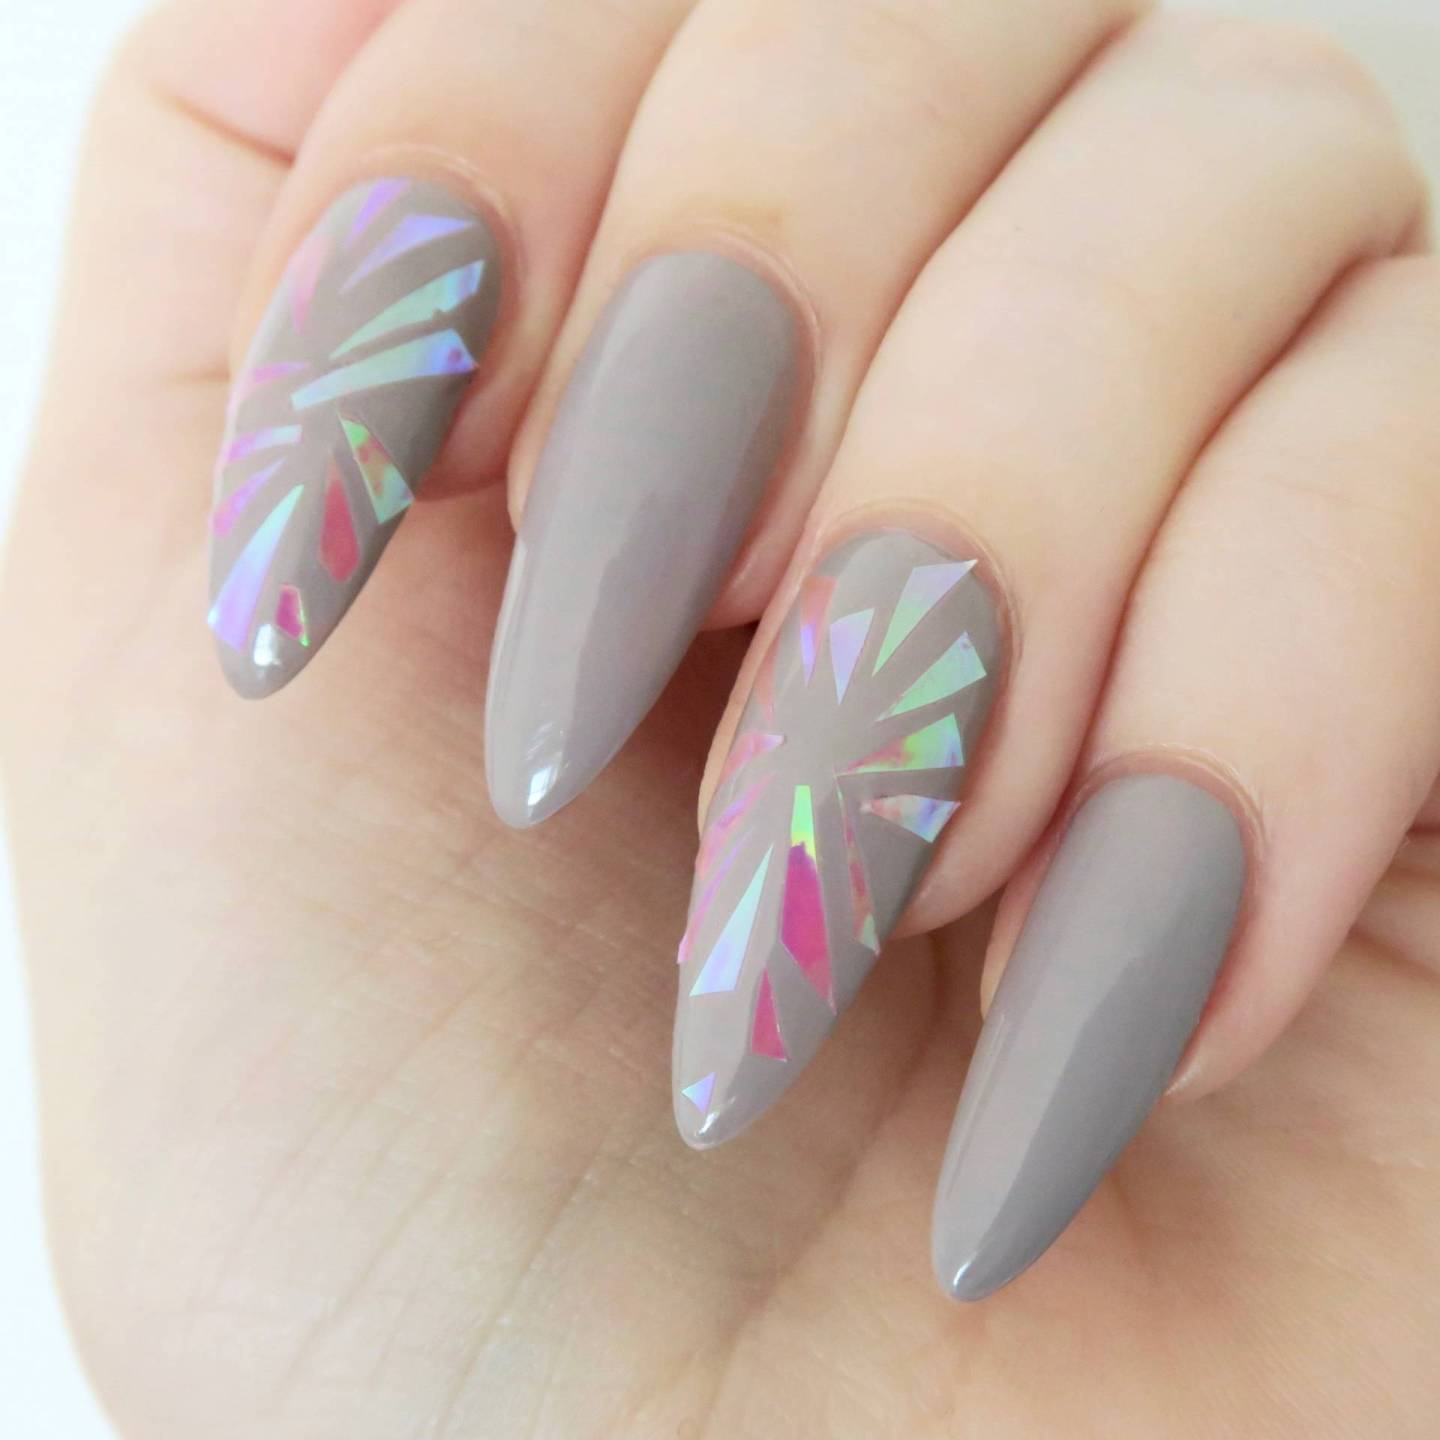 Shattered Glass manicure, shattered glass nail art // Talonted Lex